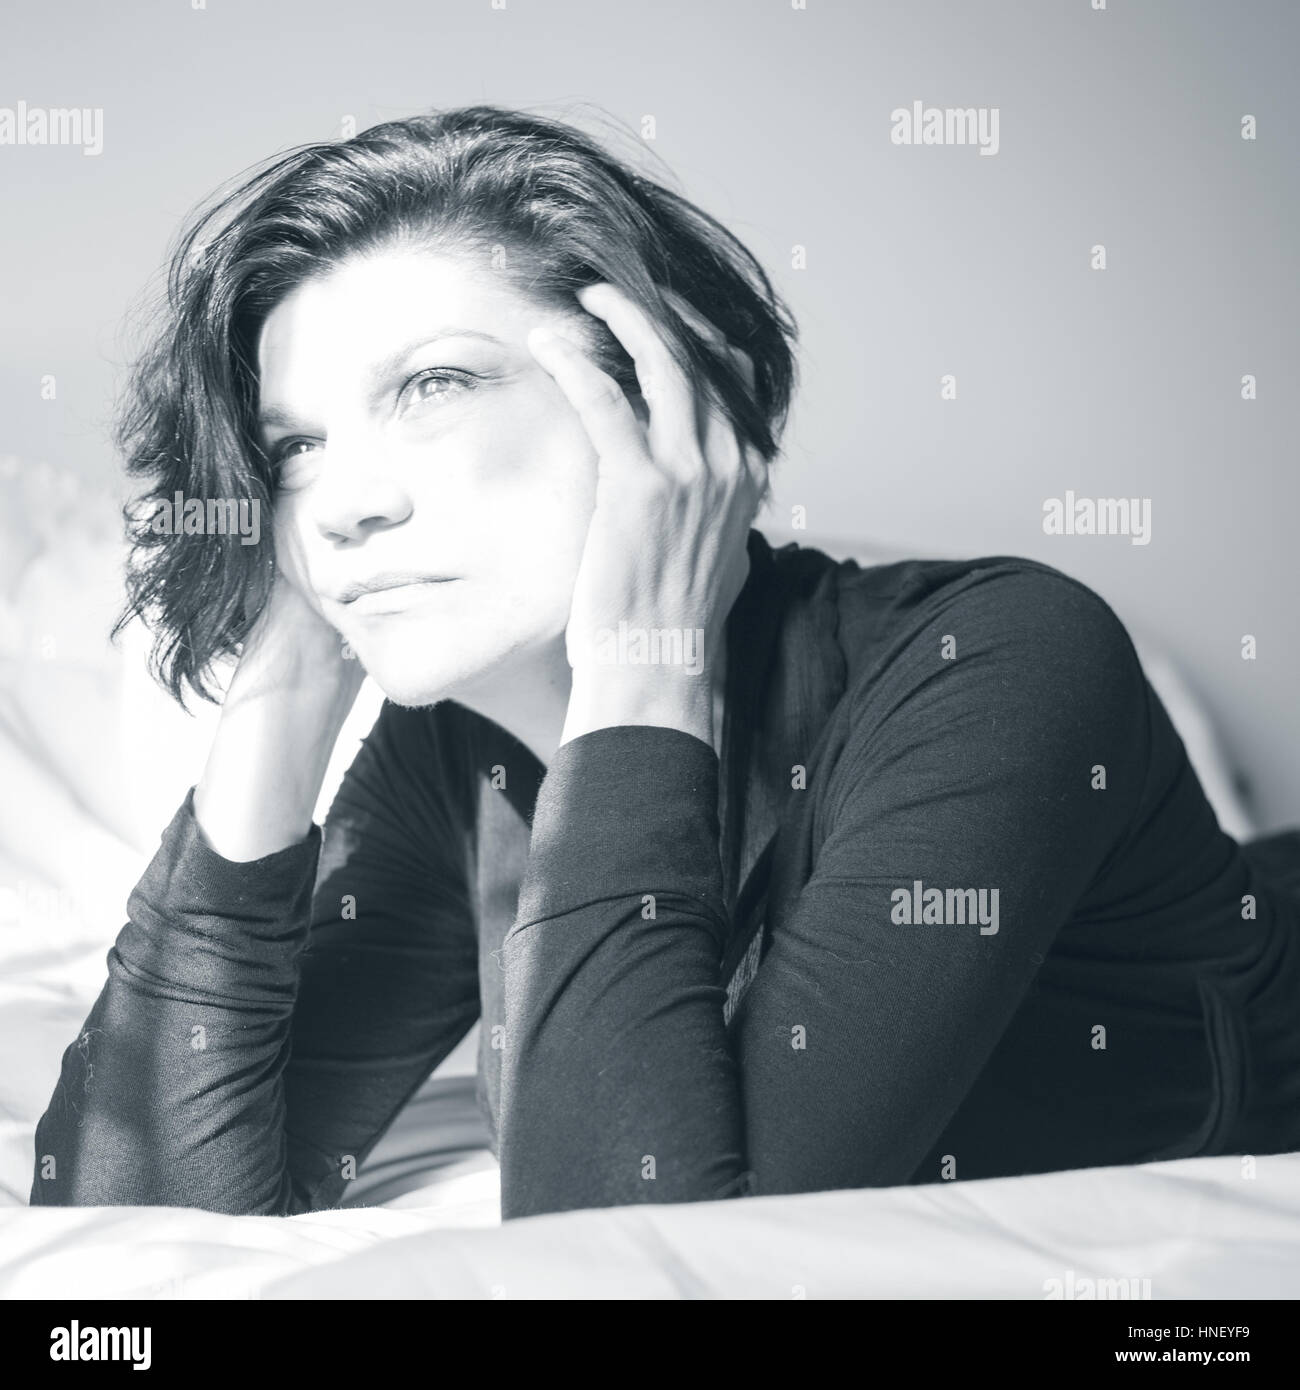 Unfocused shot of a woman in thought. Black and White. - Stock Image